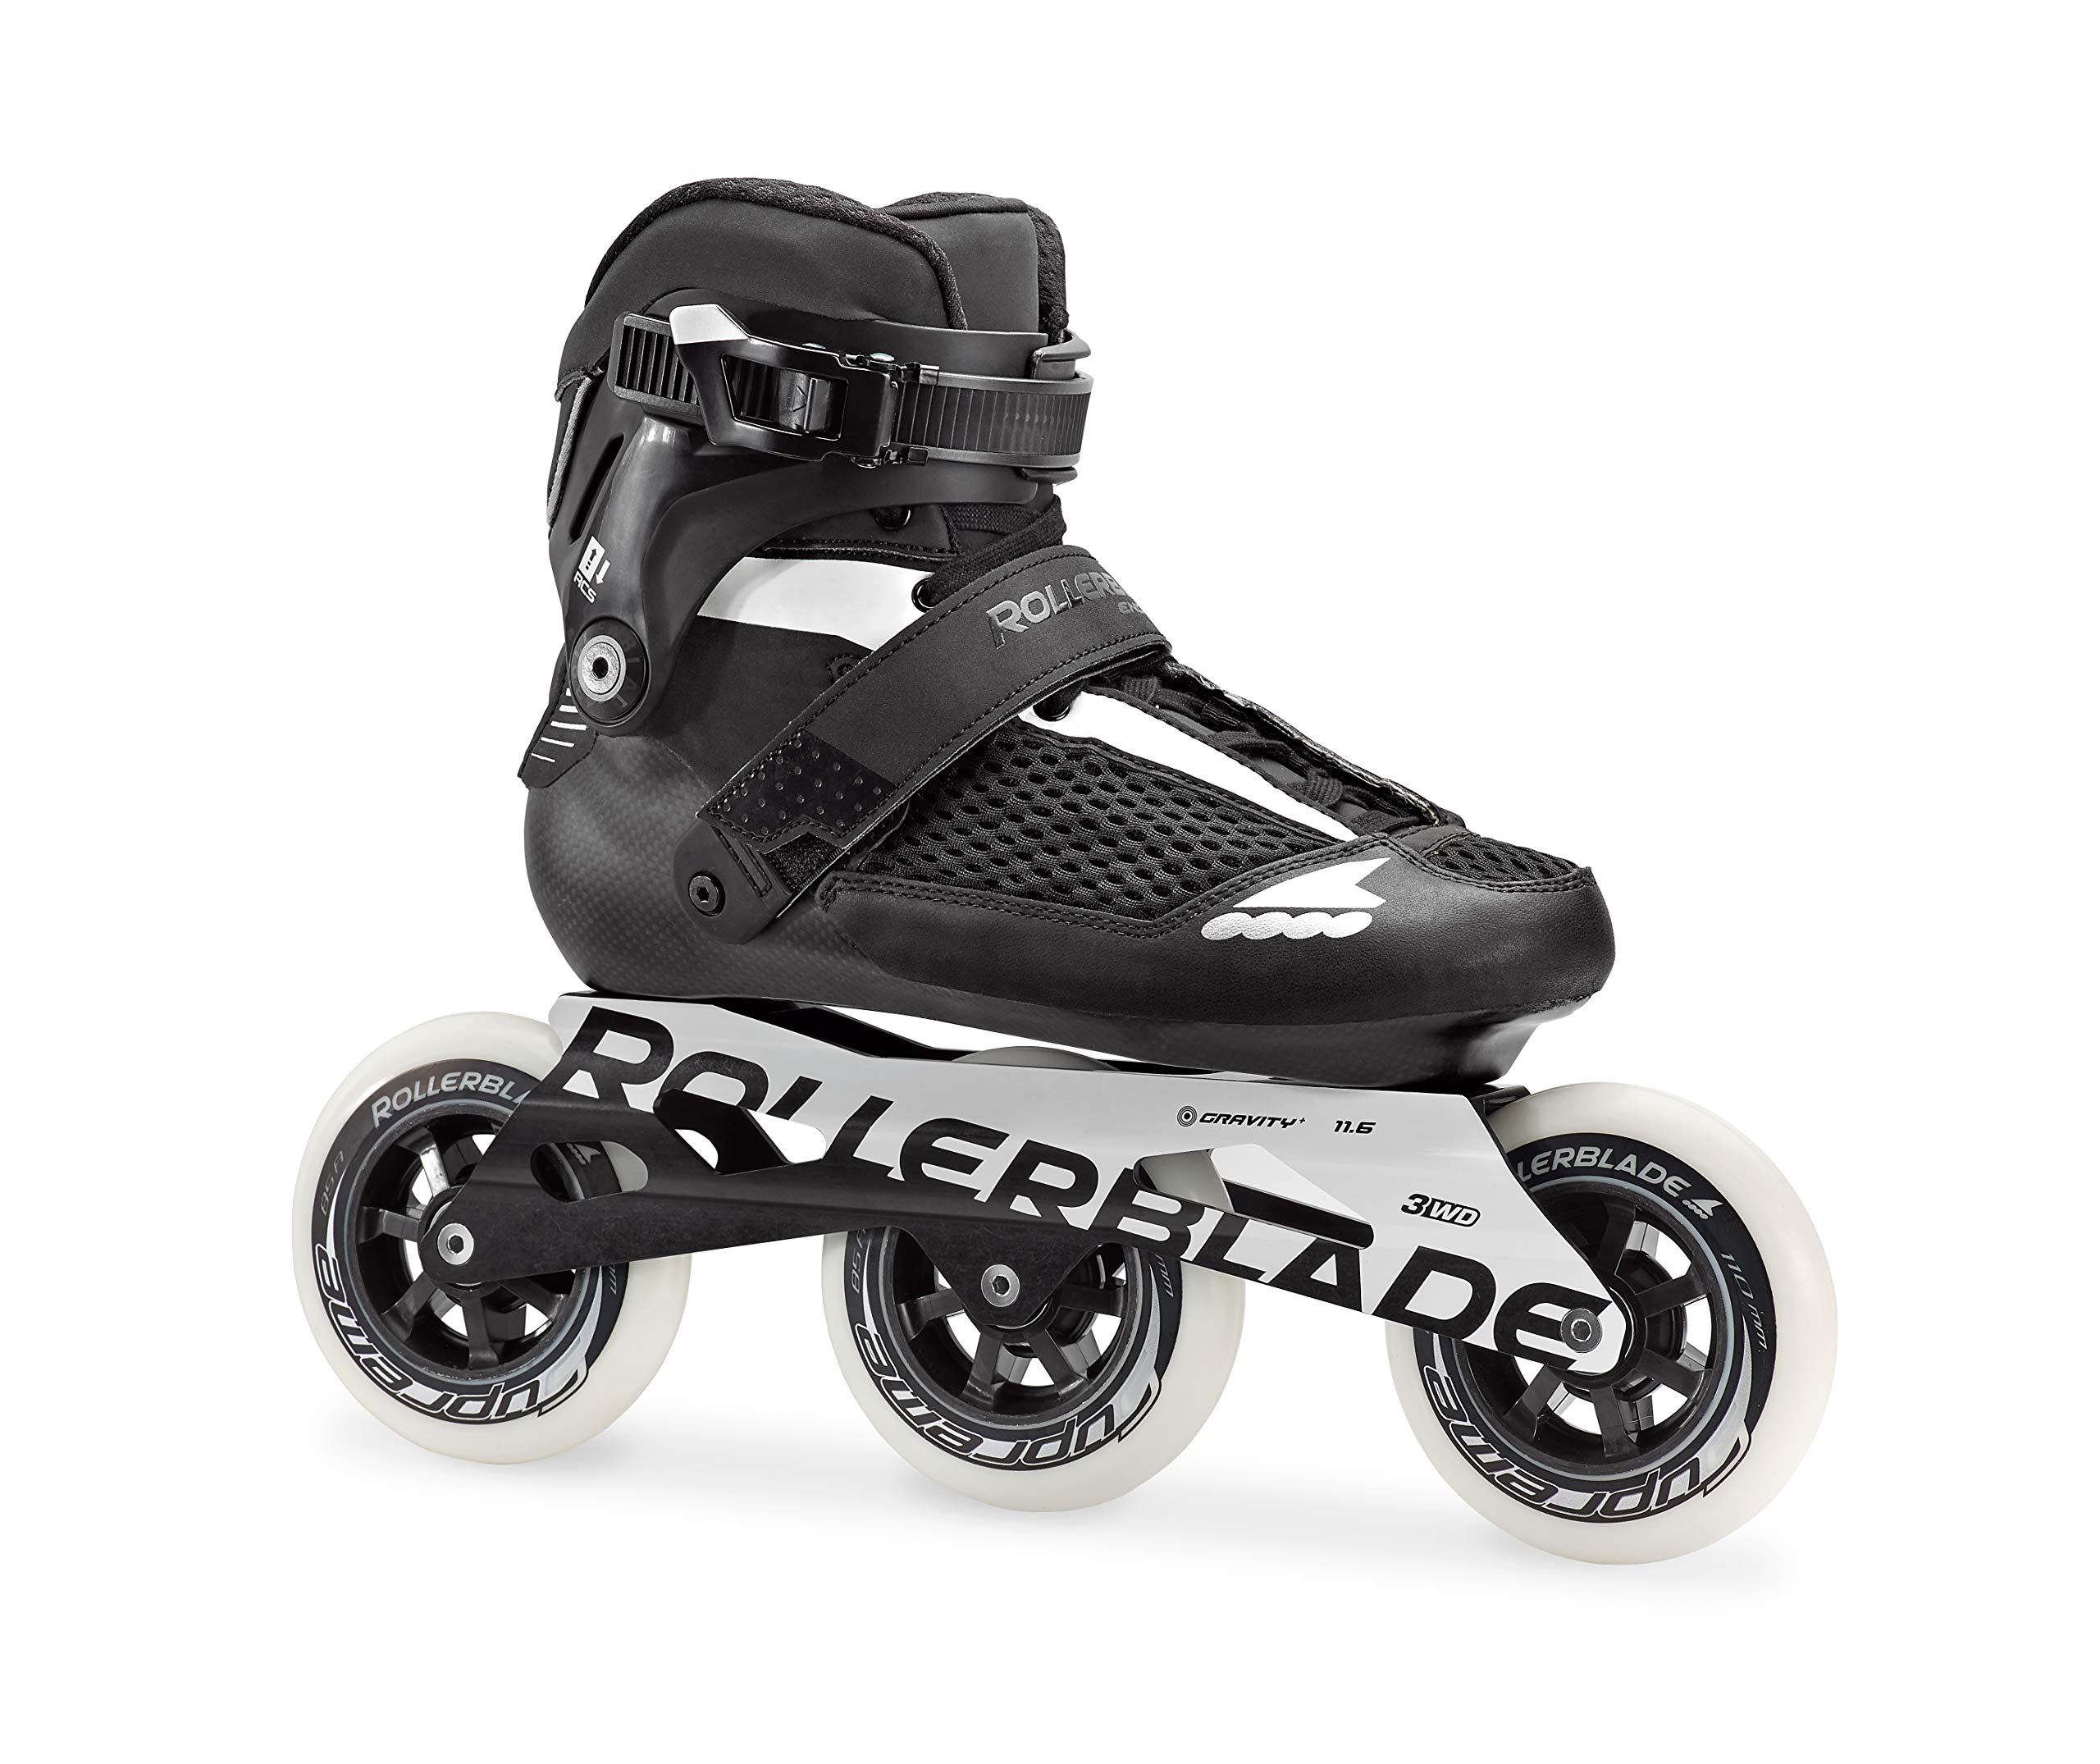 Rollerblade Endurace 110 Unisex Adult Fitness Inline Skate, Black and White, High Performance Inline Skates